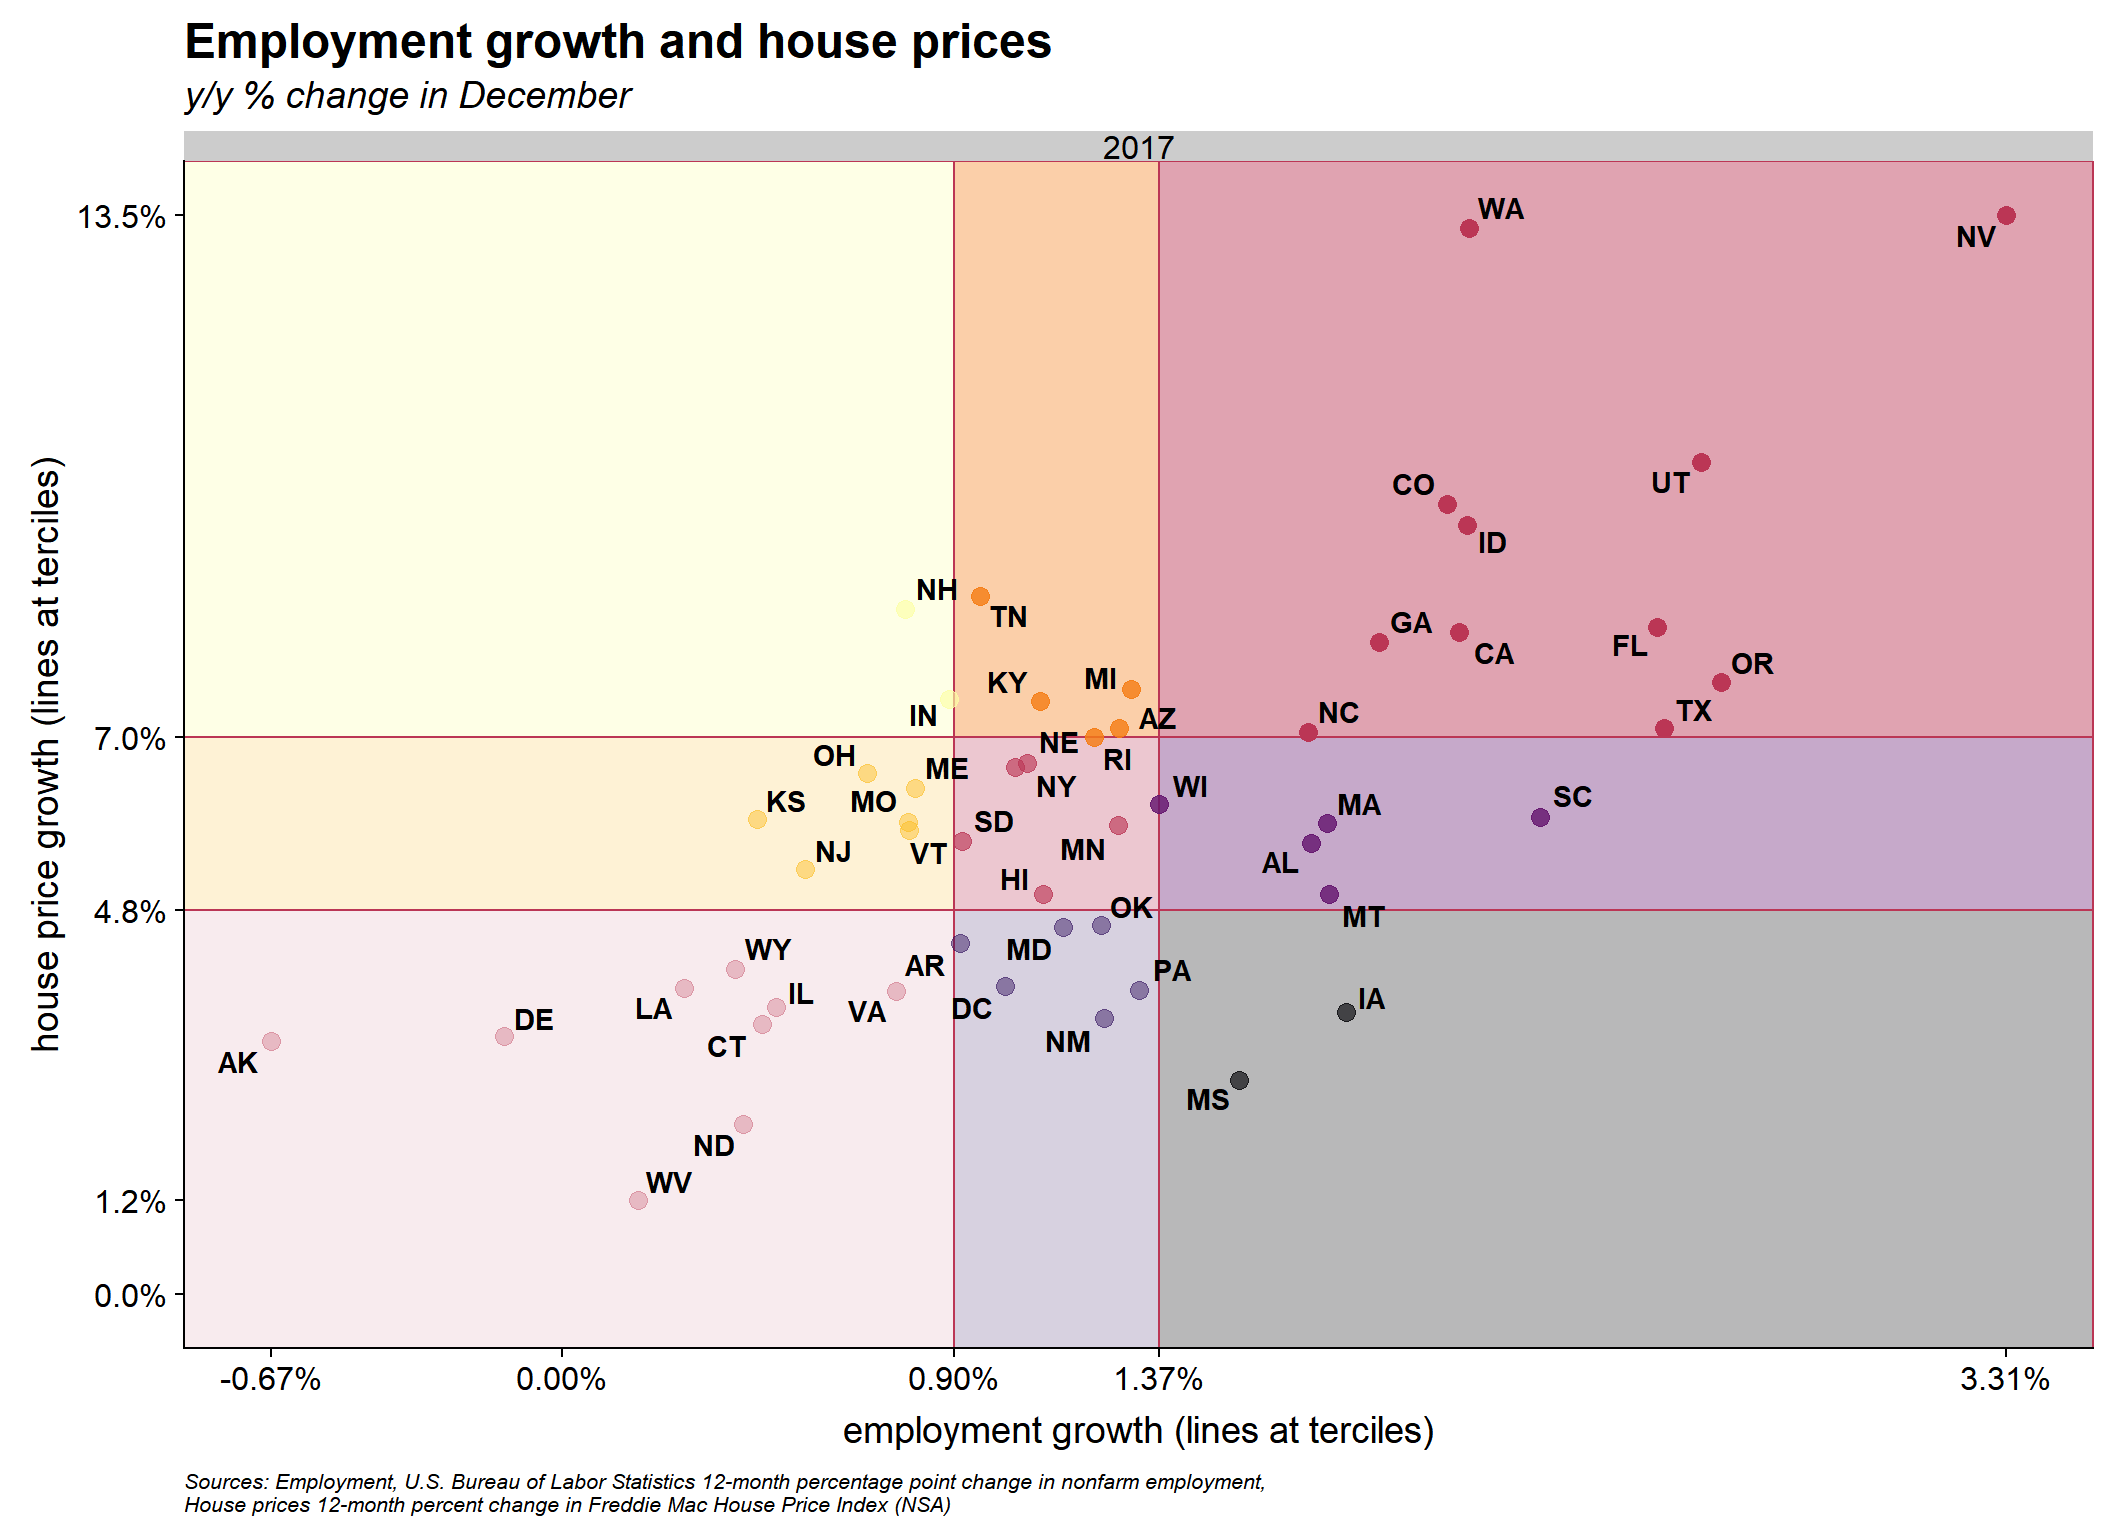 Employment growth and house price trends · Len Kiefer